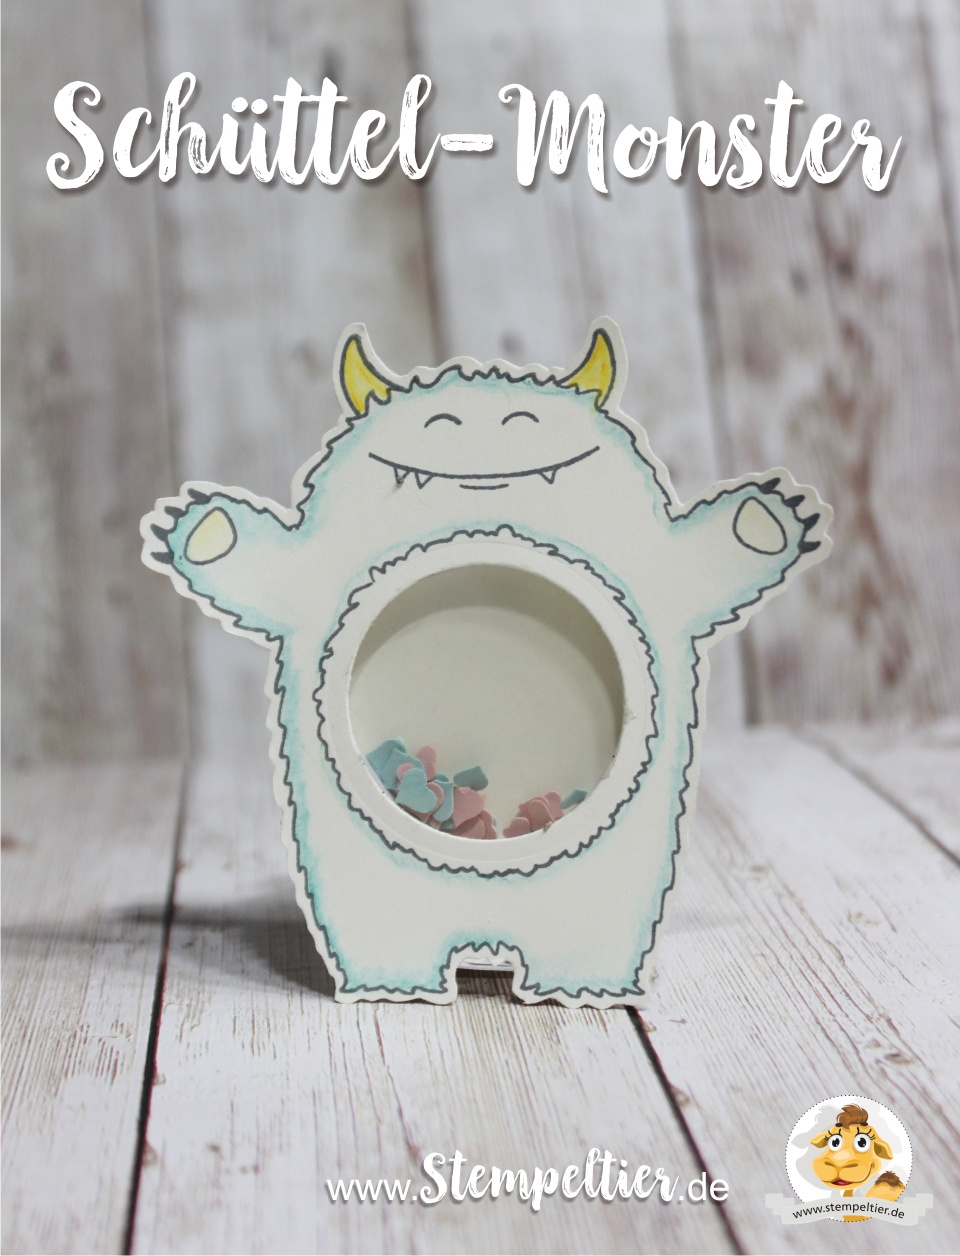 stampin up blog monster yummy in my tummy stampin up 2017 occasions frühjahr sommerkatalog